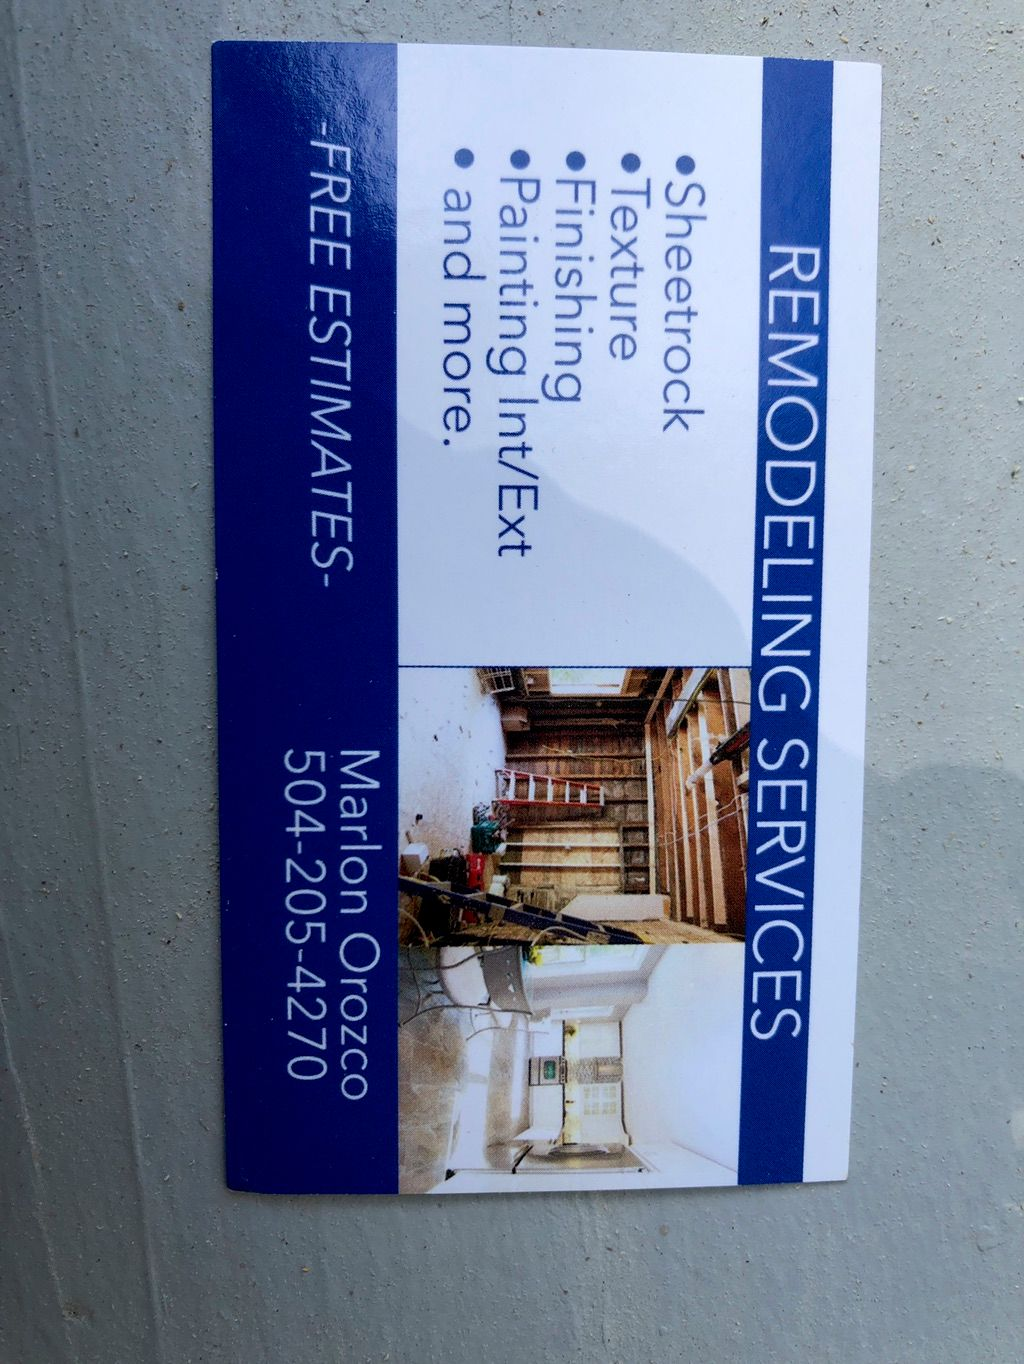 Marlon remodeling services